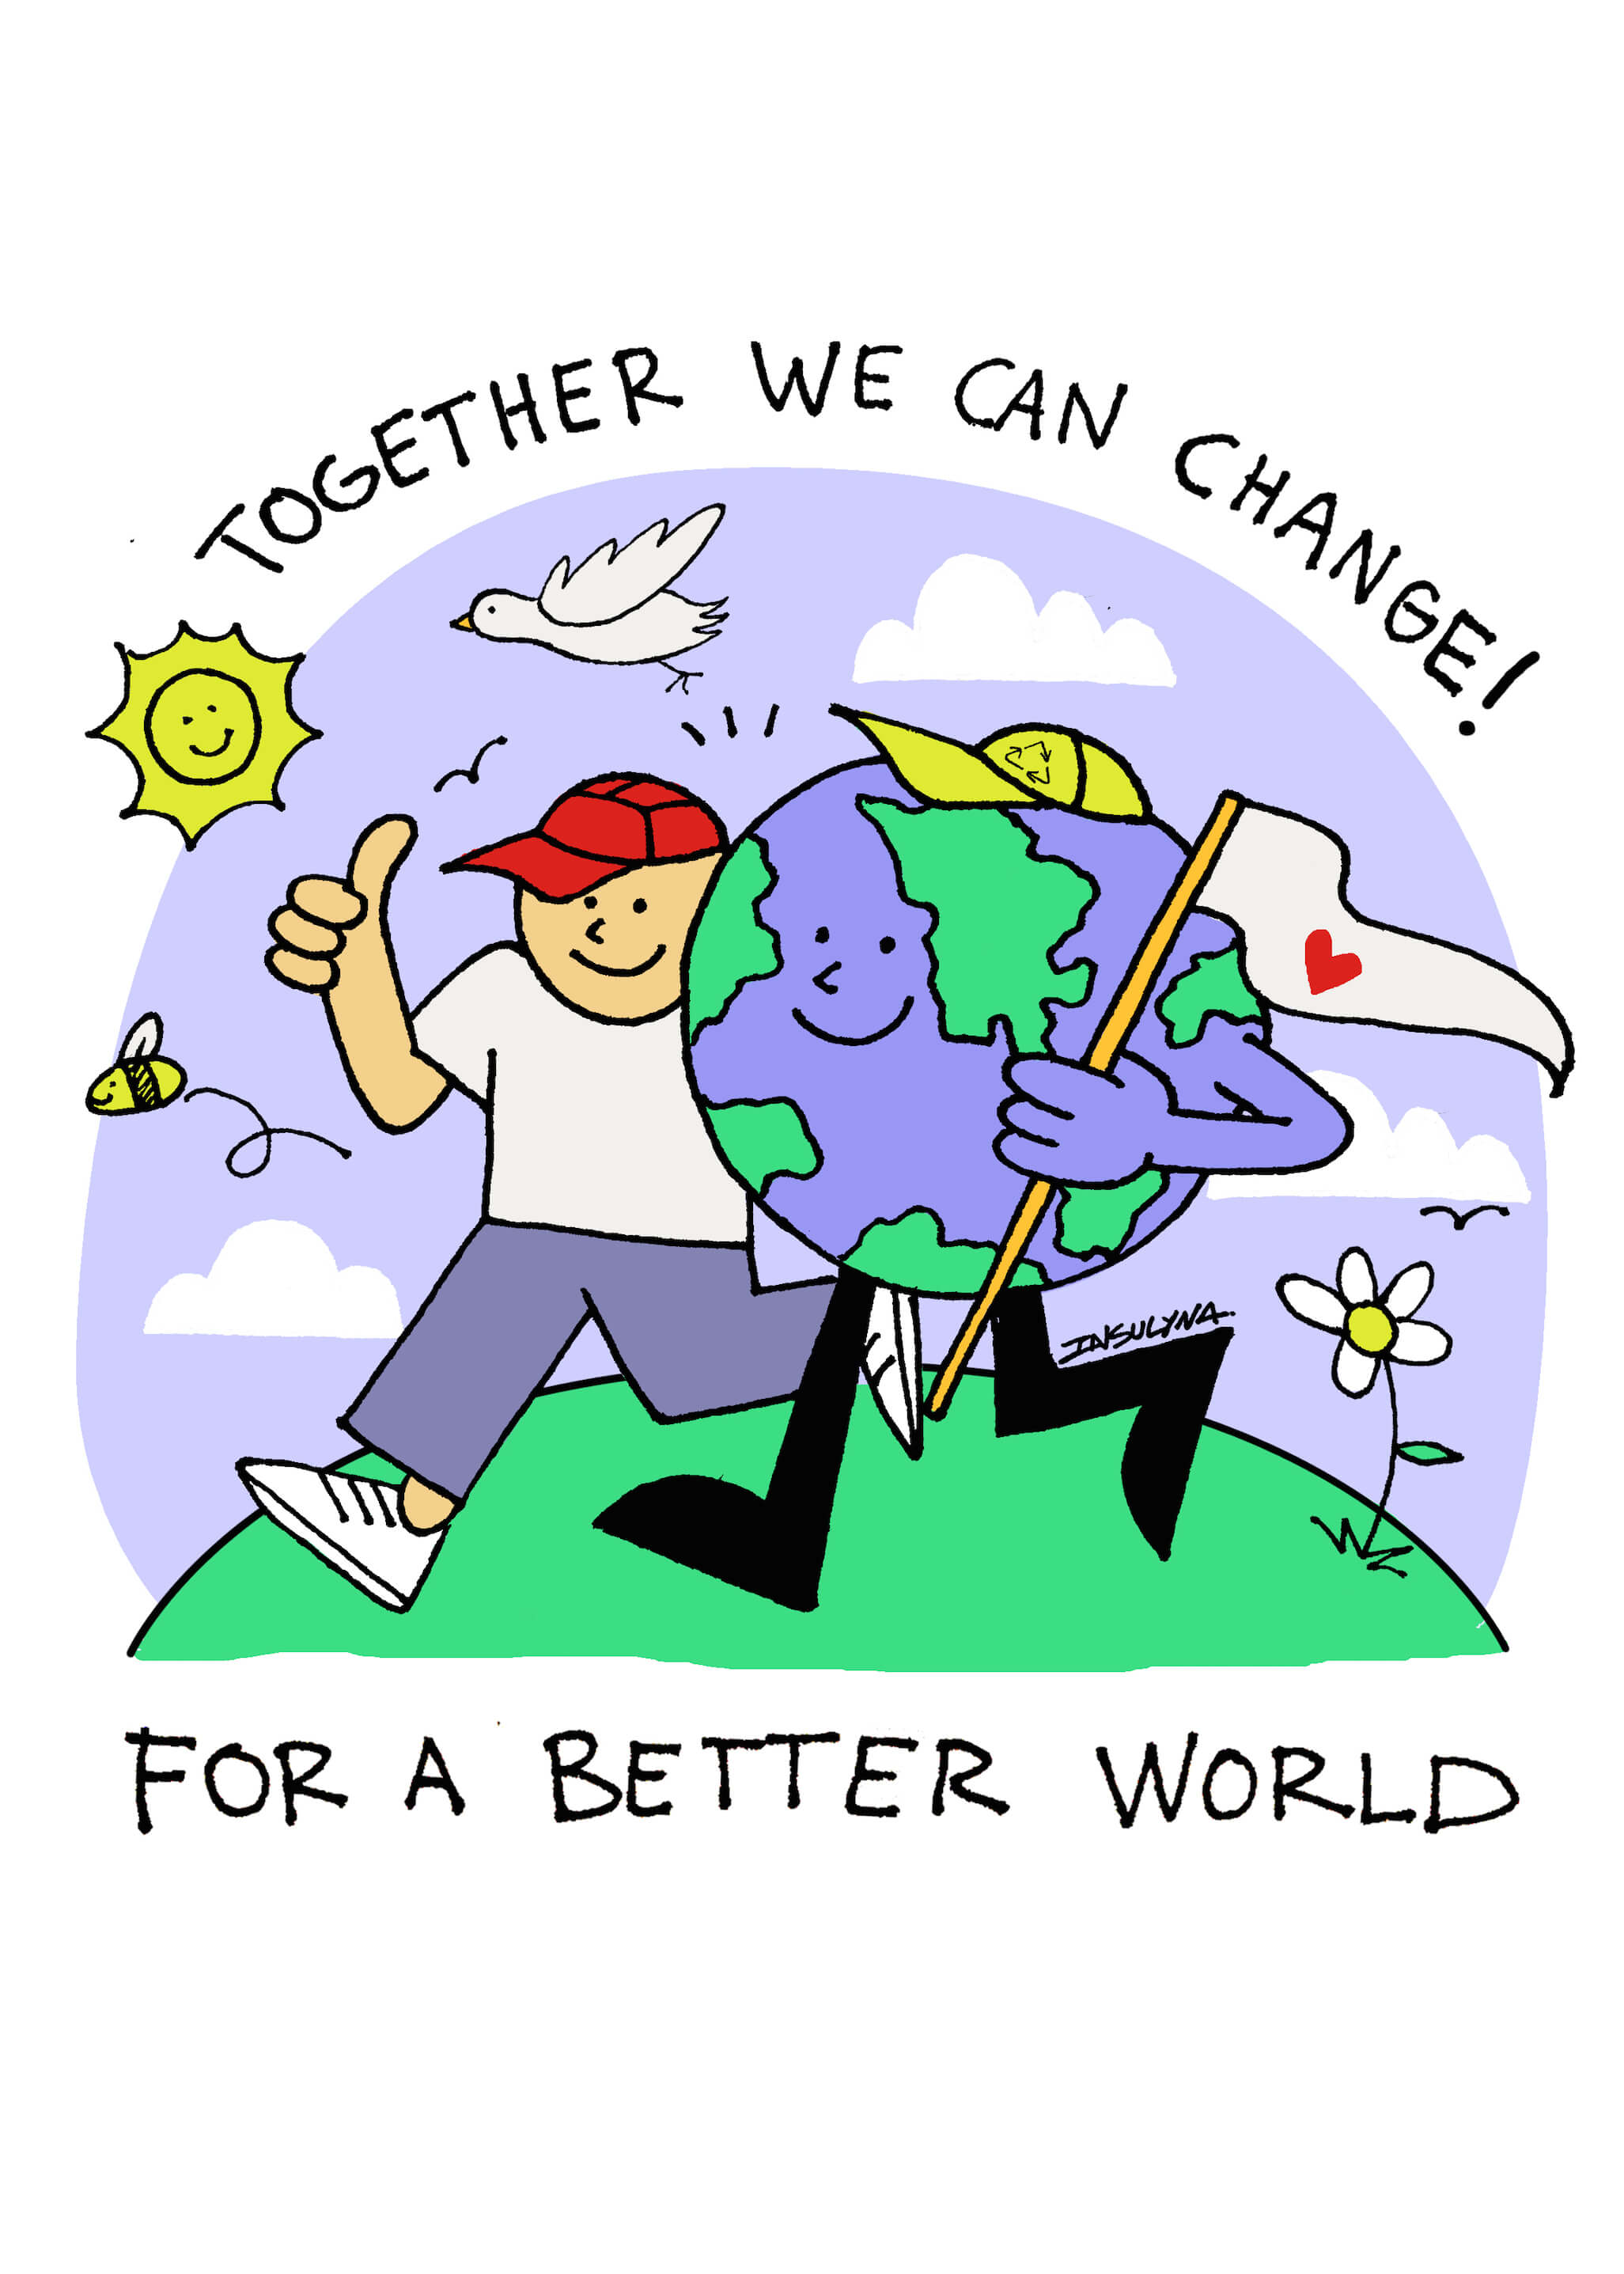 Together We Can Change main image